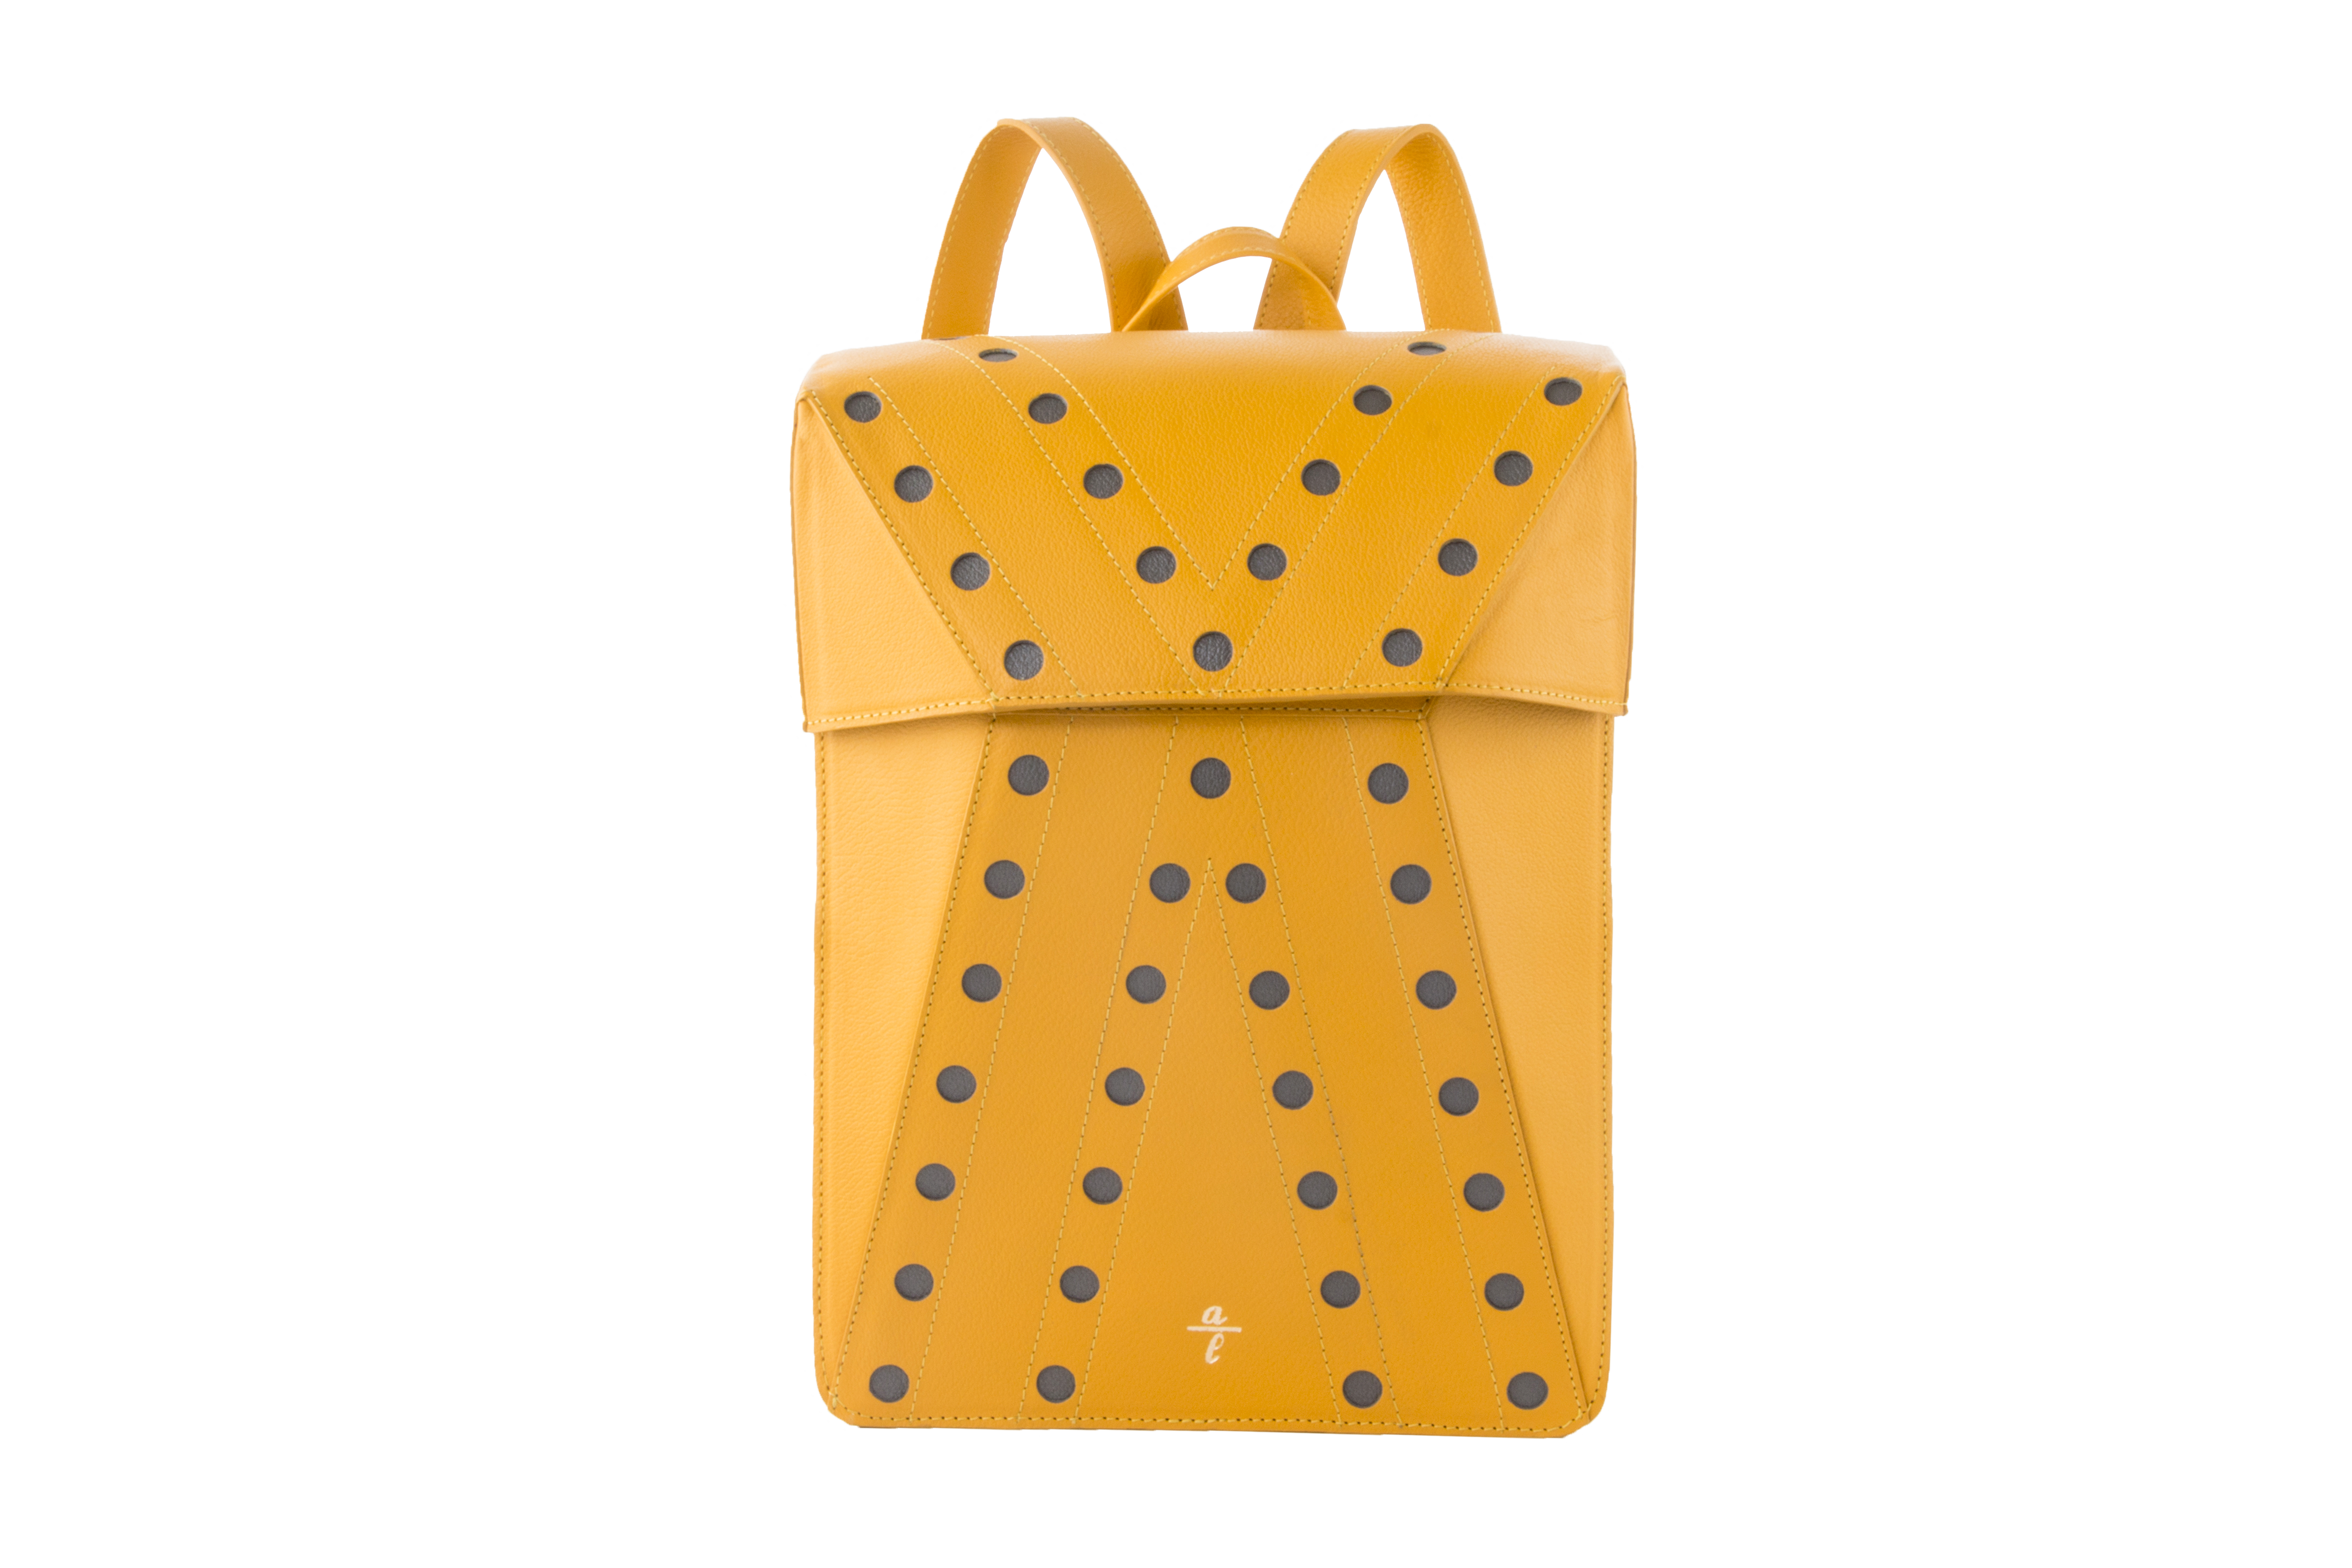 Chrome Free Women's Cata Backpack In Yellow Leather